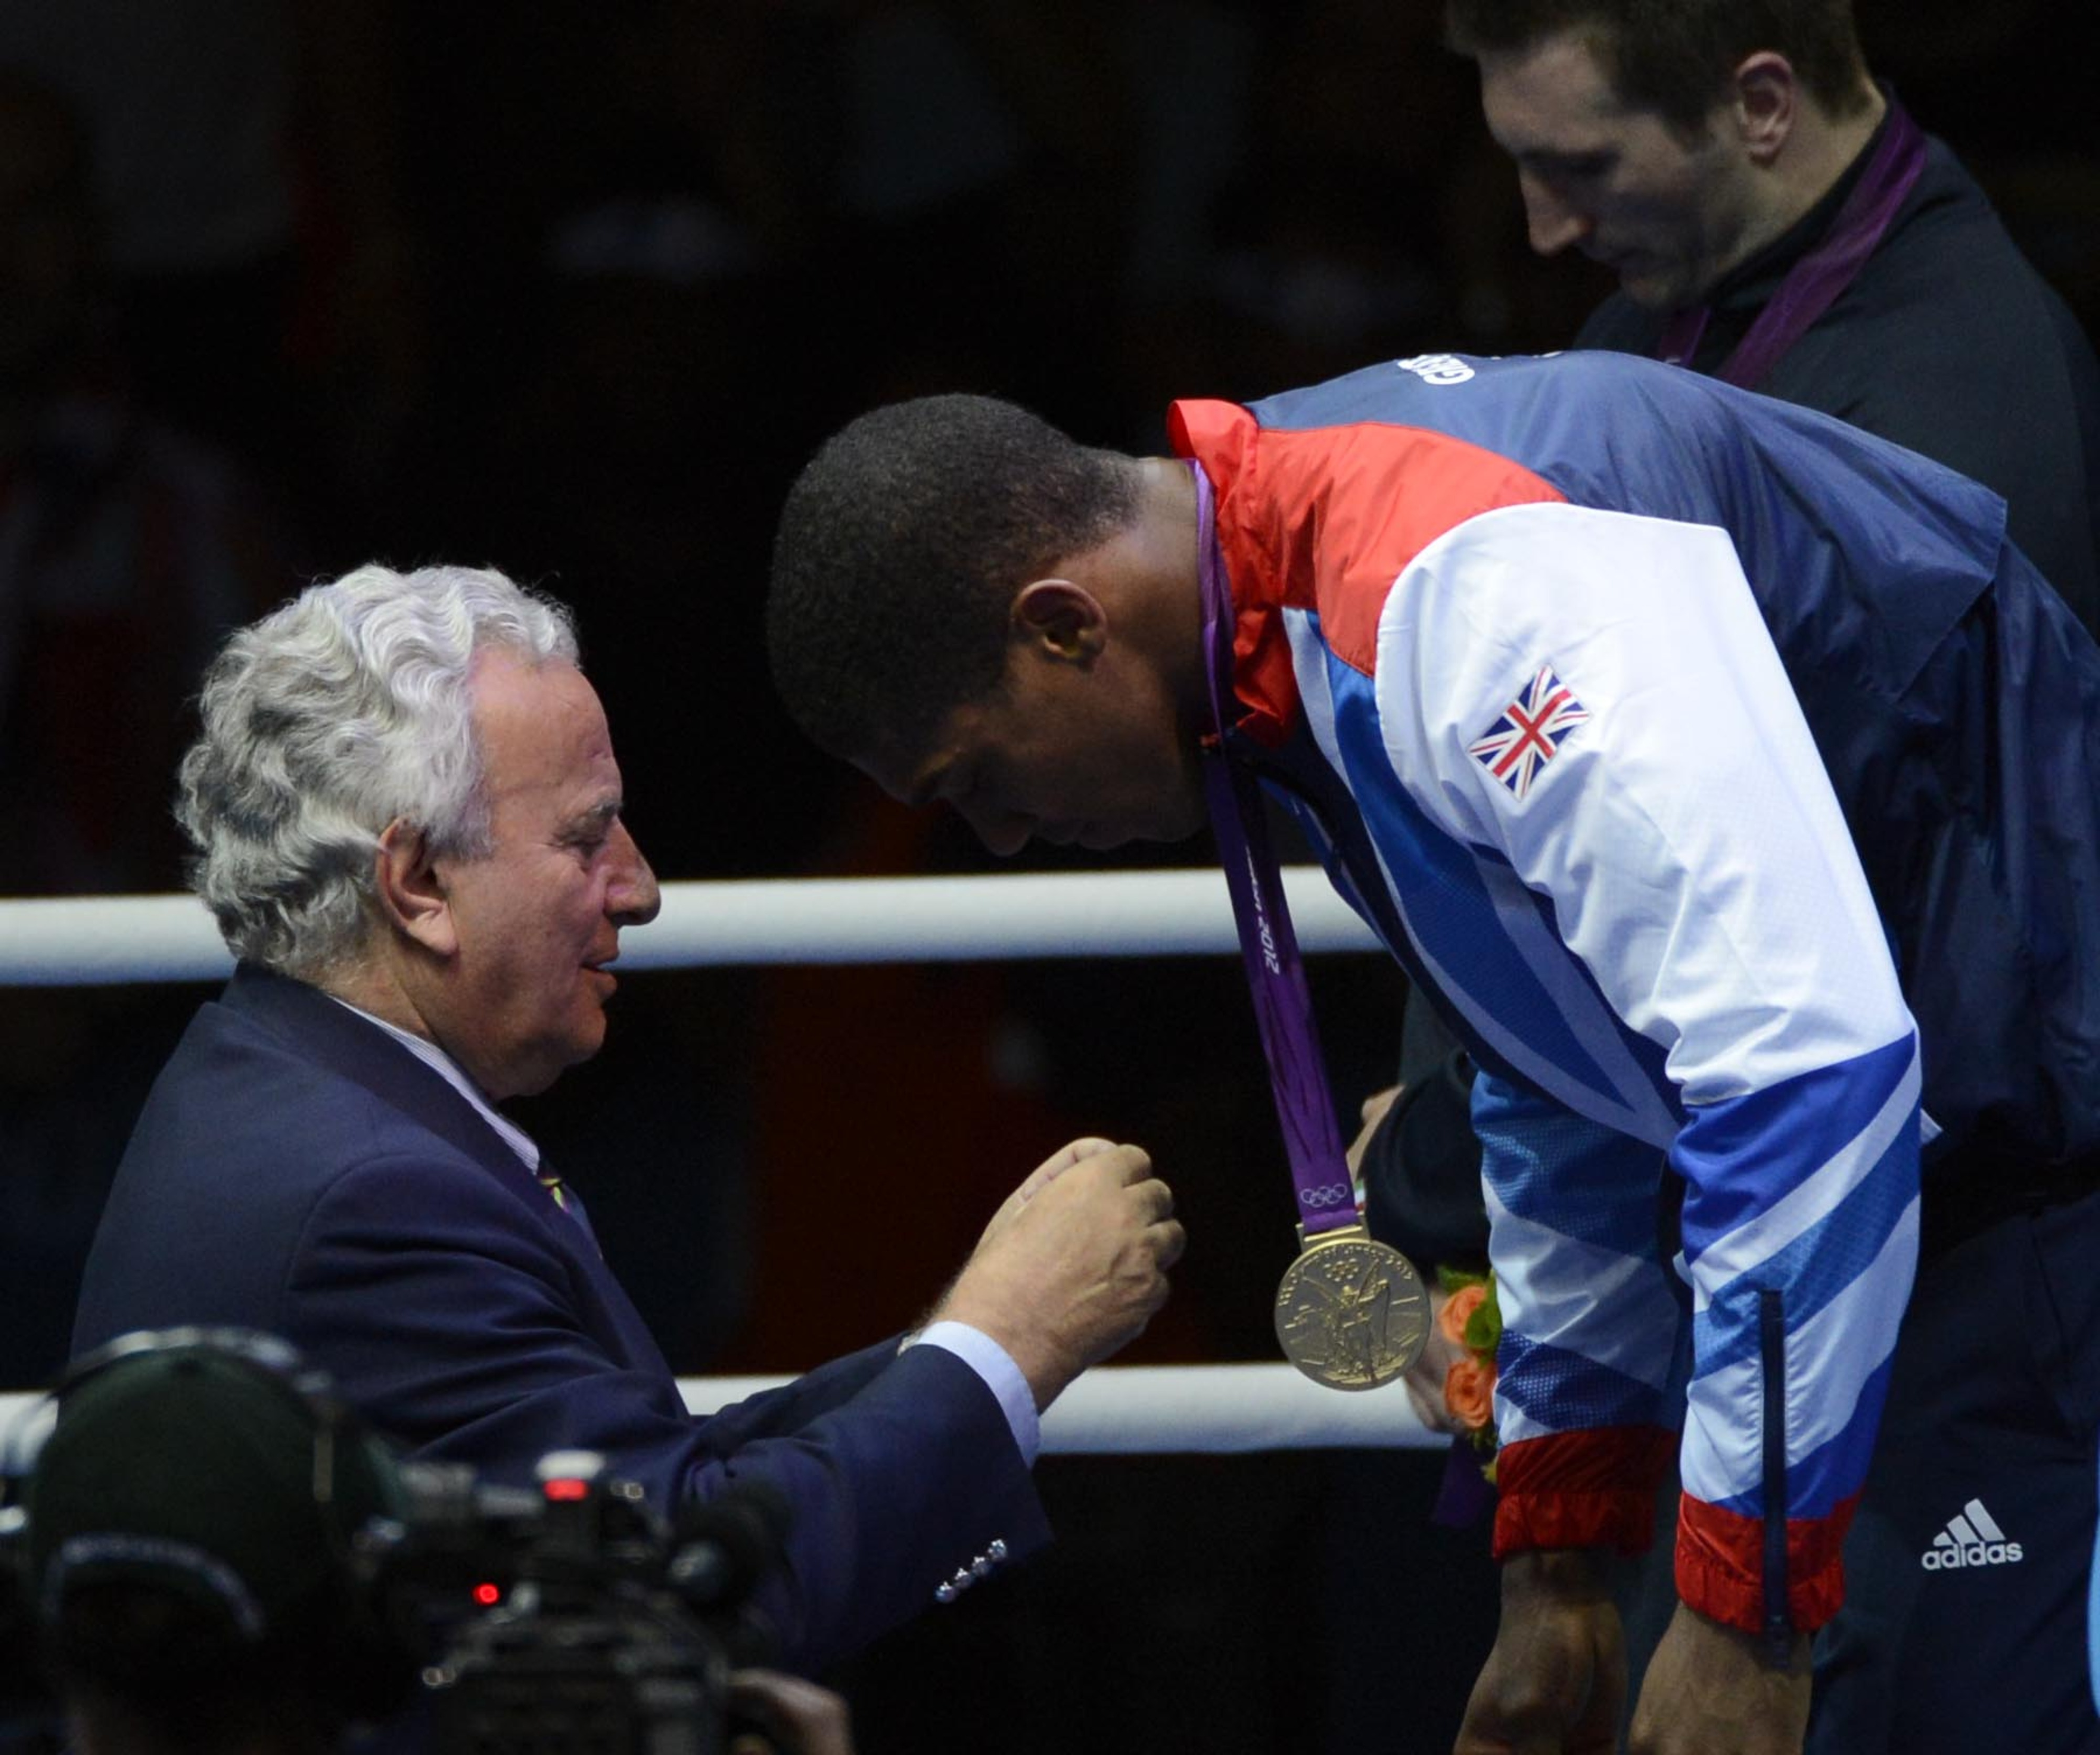 Aug 12, 2012; London, United Kingdom; Anthony Joshua (GBR) receives his medal after winning the men's super heavy weight final bout during the London 2012 Olympic Games at ExCeL - South Arena 2.